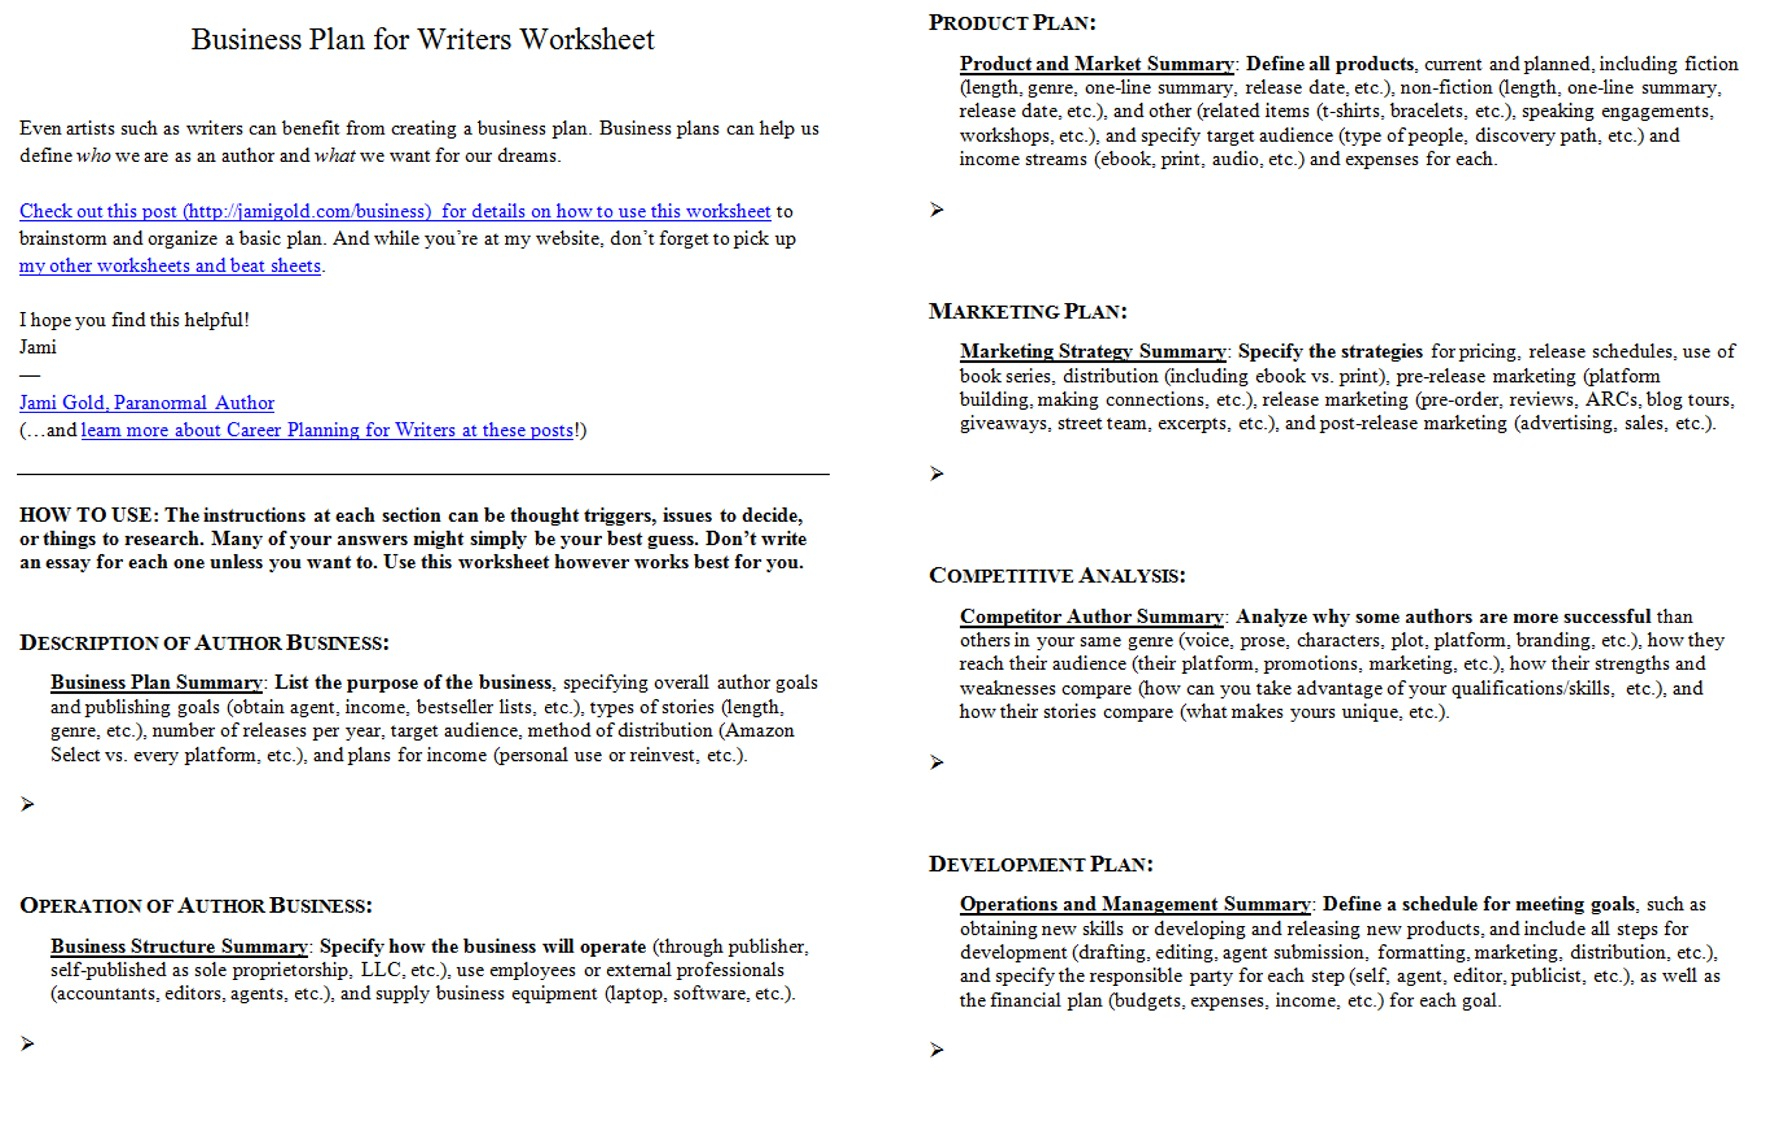 Proatmealus  Scenic Worksheets For Writers  Jami Gold Paranormal Author With Handsome Screen Shot Of Both Pages Of The Business Plan For Writers Worksheet With Lovely Digital Clocks Worksheet Also Activity Worksheets For Grade  In Addition Free Integers Worksheets And Conjunction Worksheets With Answers As Well As Bisector Worksheet Additionally Numerical Patterns Worksheet From Jamigoldcom With Proatmealus  Handsome Worksheets For Writers  Jami Gold Paranormal Author With Lovely Screen Shot Of Both Pages Of The Business Plan For Writers Worksheet And Scenic Digital Clocks Worksheet Also Activity Worksheets For Grade  In Addition Free Integers Worksheets From Jamigoldcom